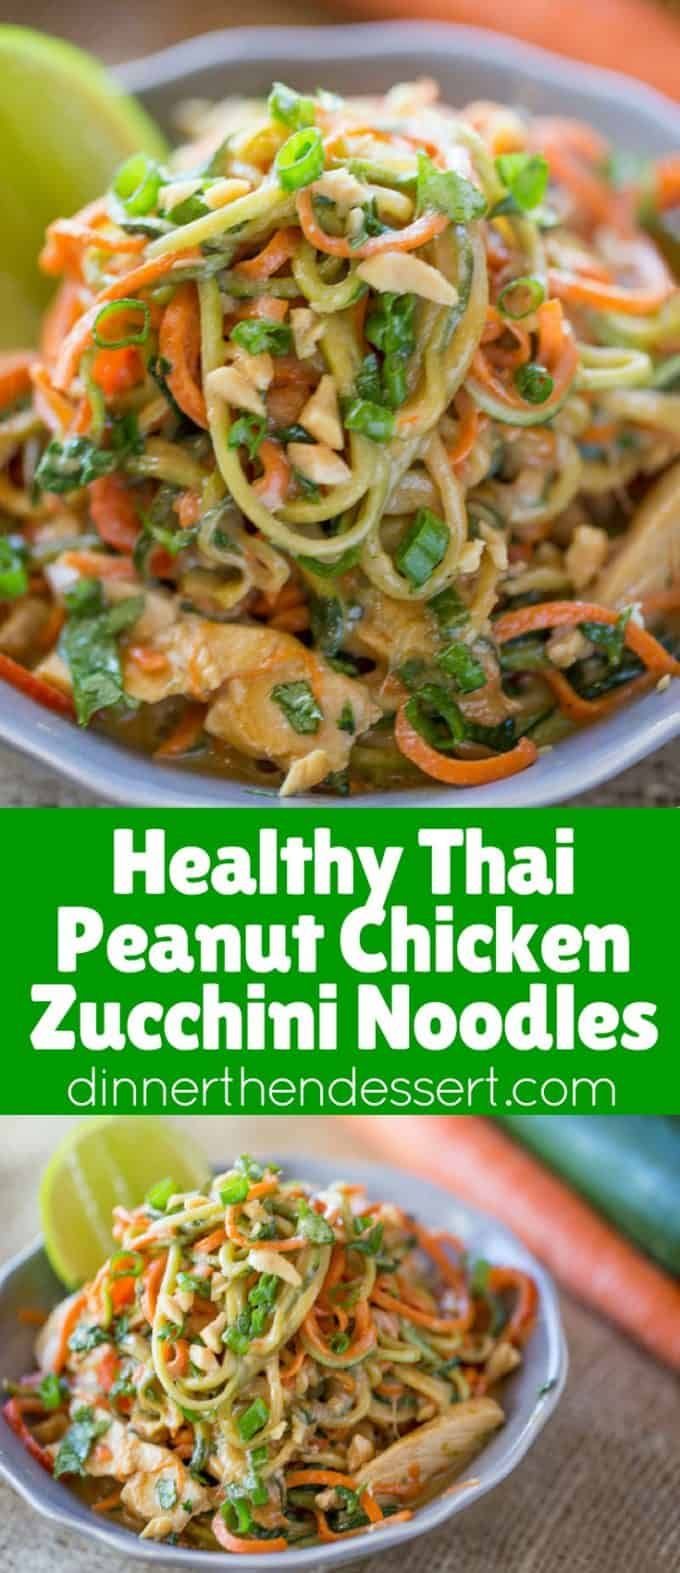 Healthy Thai Peanut Chicken Zucchini Noodles with a fresh peanut lime sauce mixe…